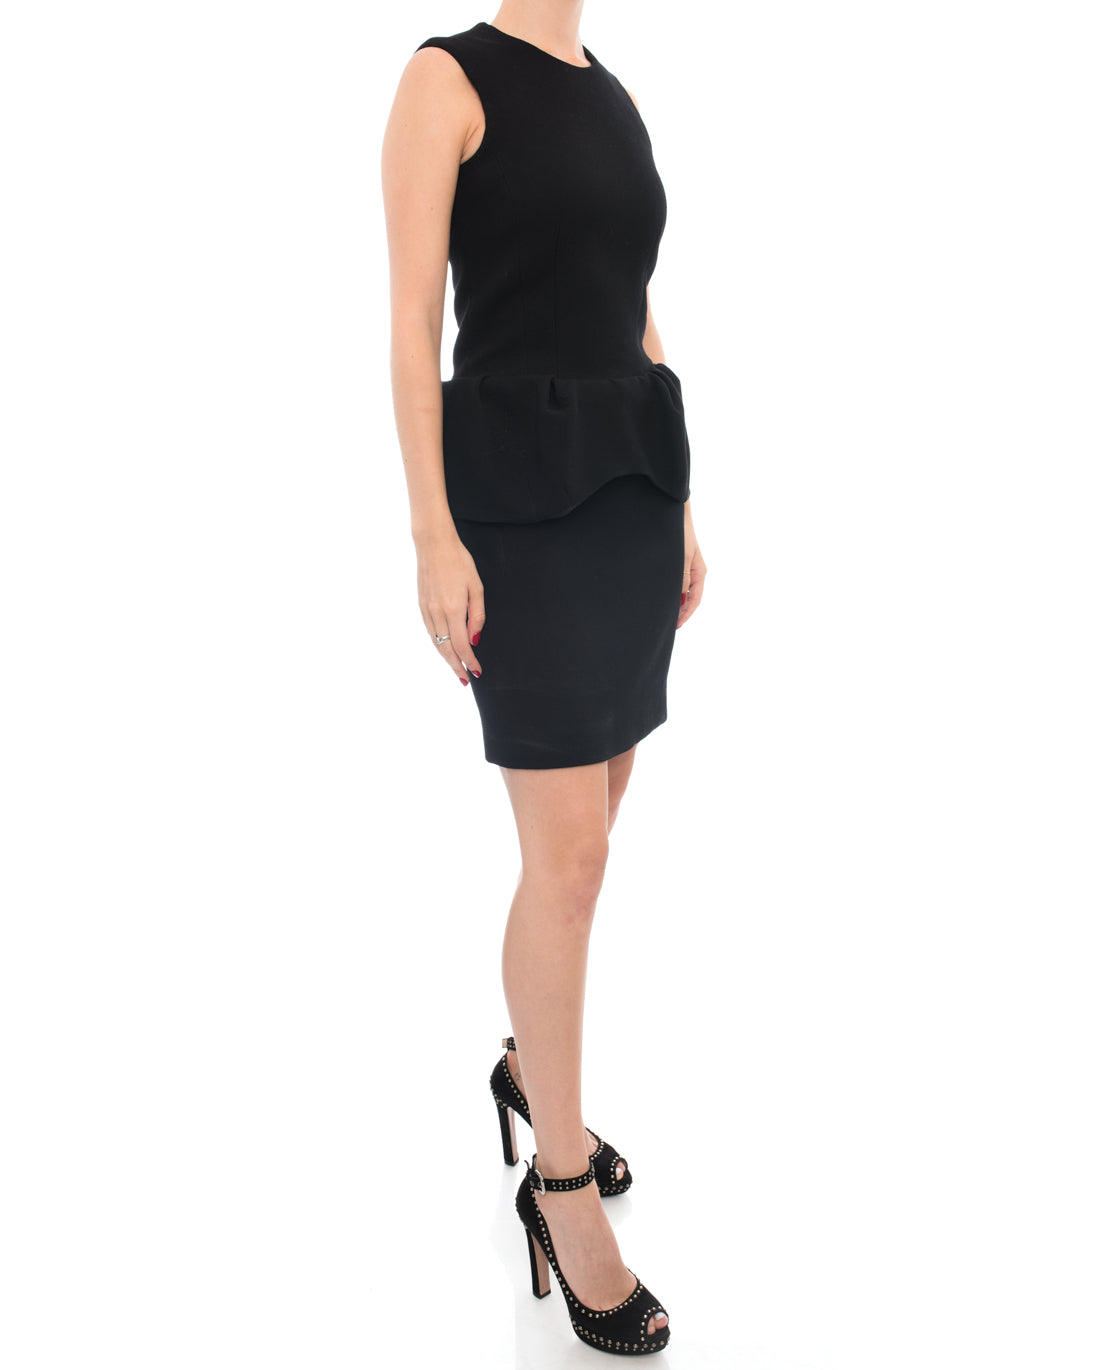 Marni Black Wool Sleeveless Peplum Dress - 2